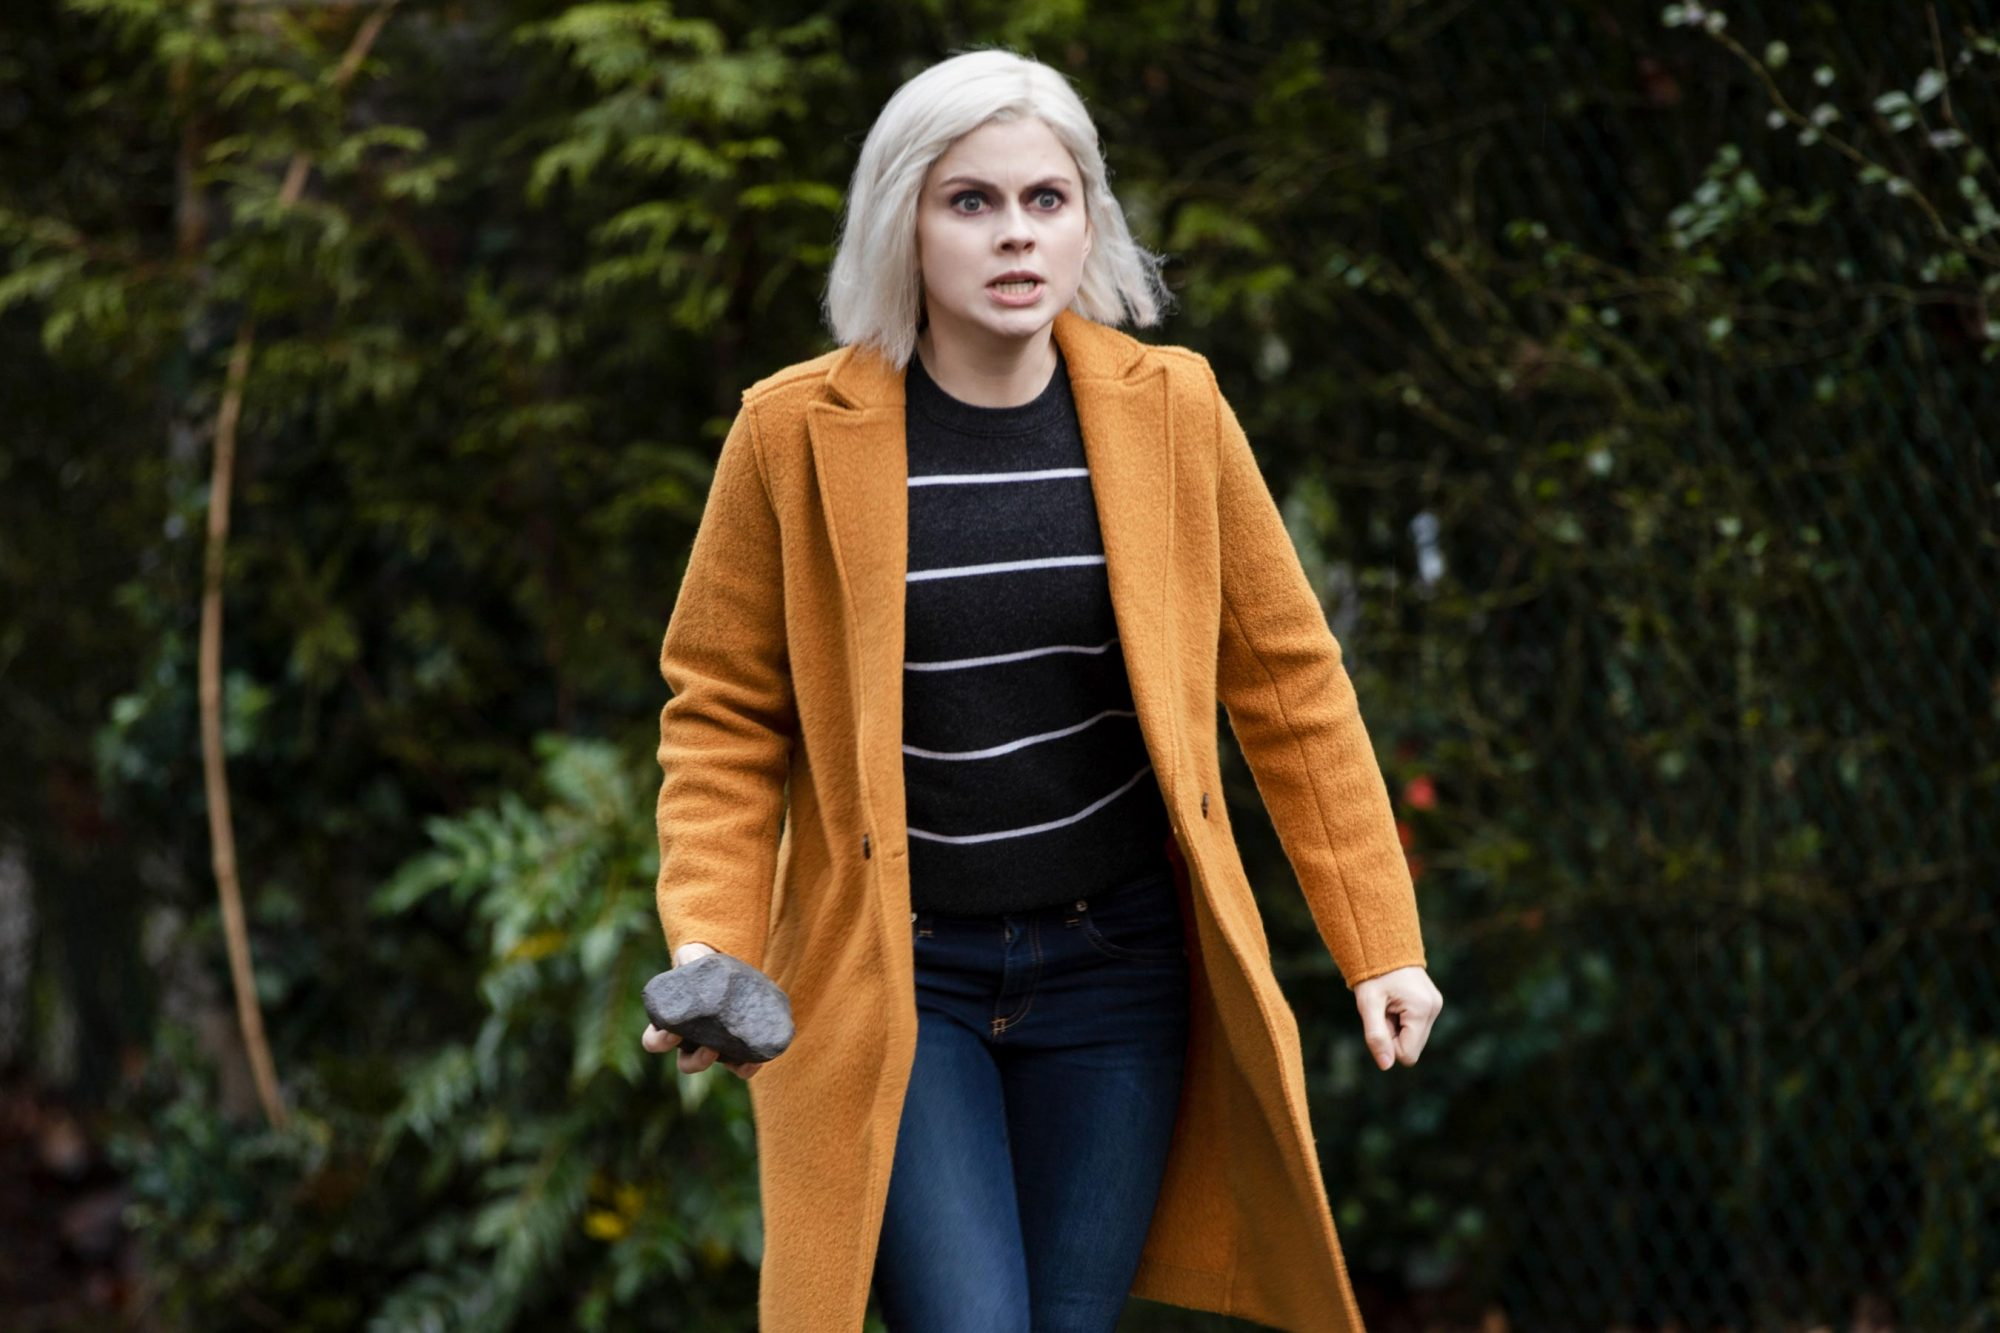 """iZombie -- """"All's Well That Ends Well"""" -- Image Number: ZMB513a_0107b.jpg -- Pictured: Rose McIver as Liv -- Photo Credit: Jack Rowand/The CW -- © 2019 The CW Network, LLC. All Rights Reserved."""